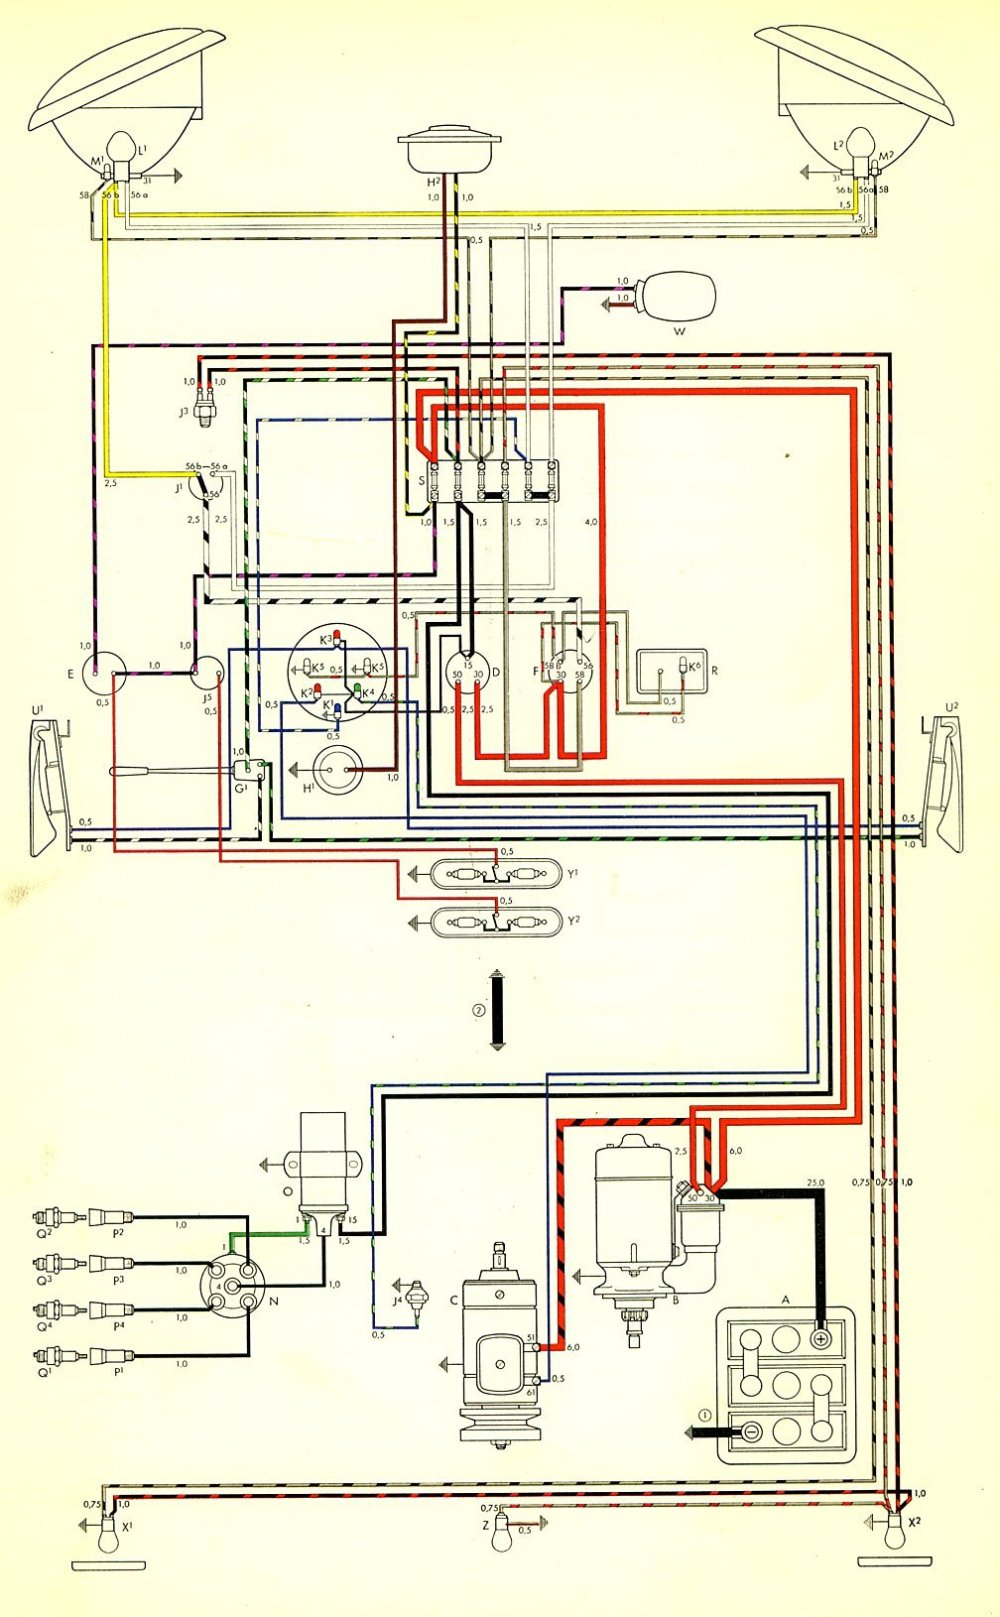 medium resolution of eagle bus wiring schematics wiring diagram sheet silver eagle bus wiring diagram eagle bus wiring diagram